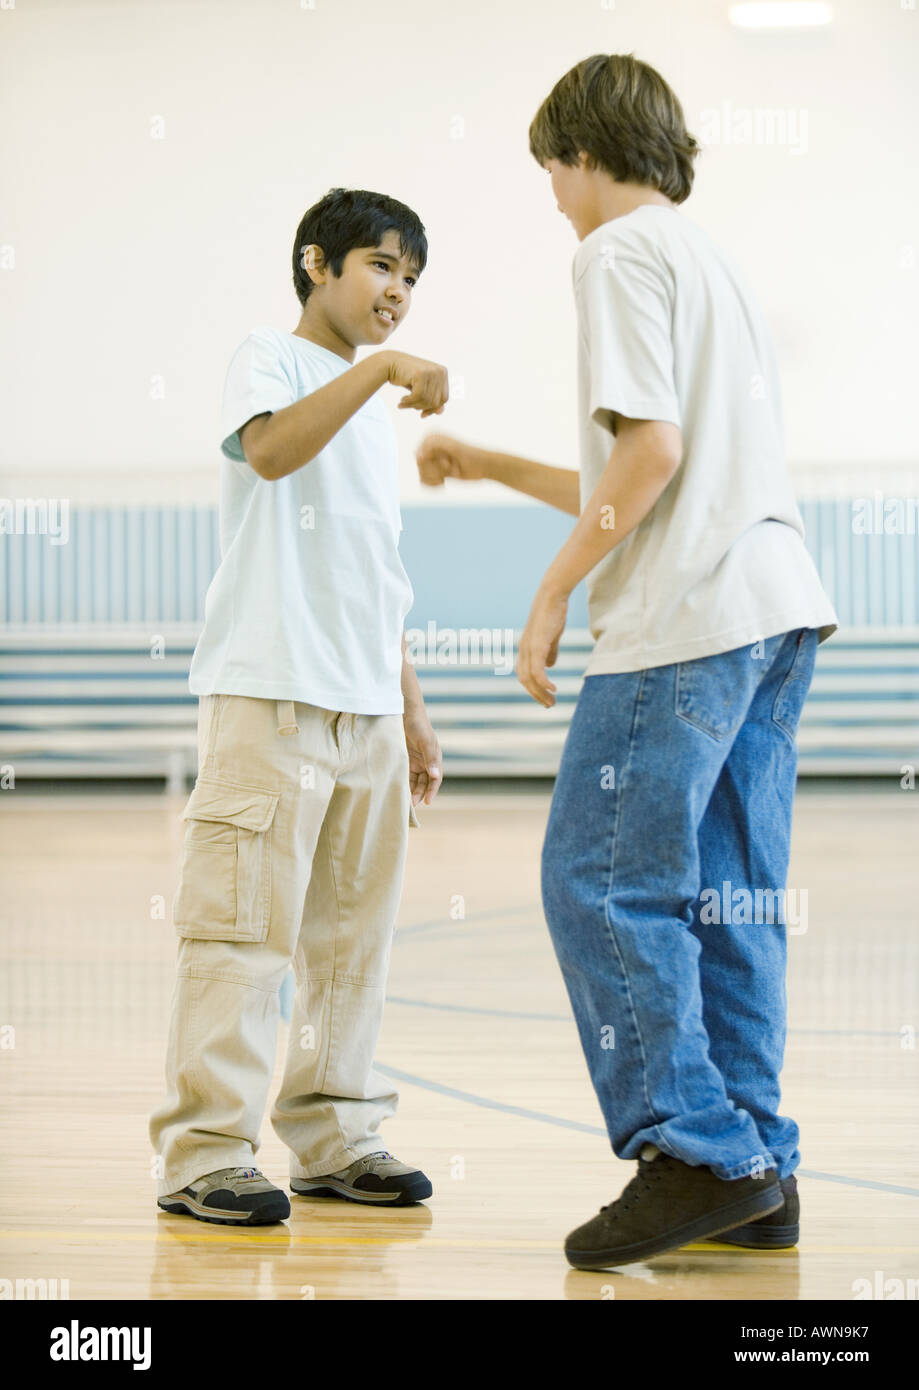 Two teen boys performing special handshake in school gym - Stock Image